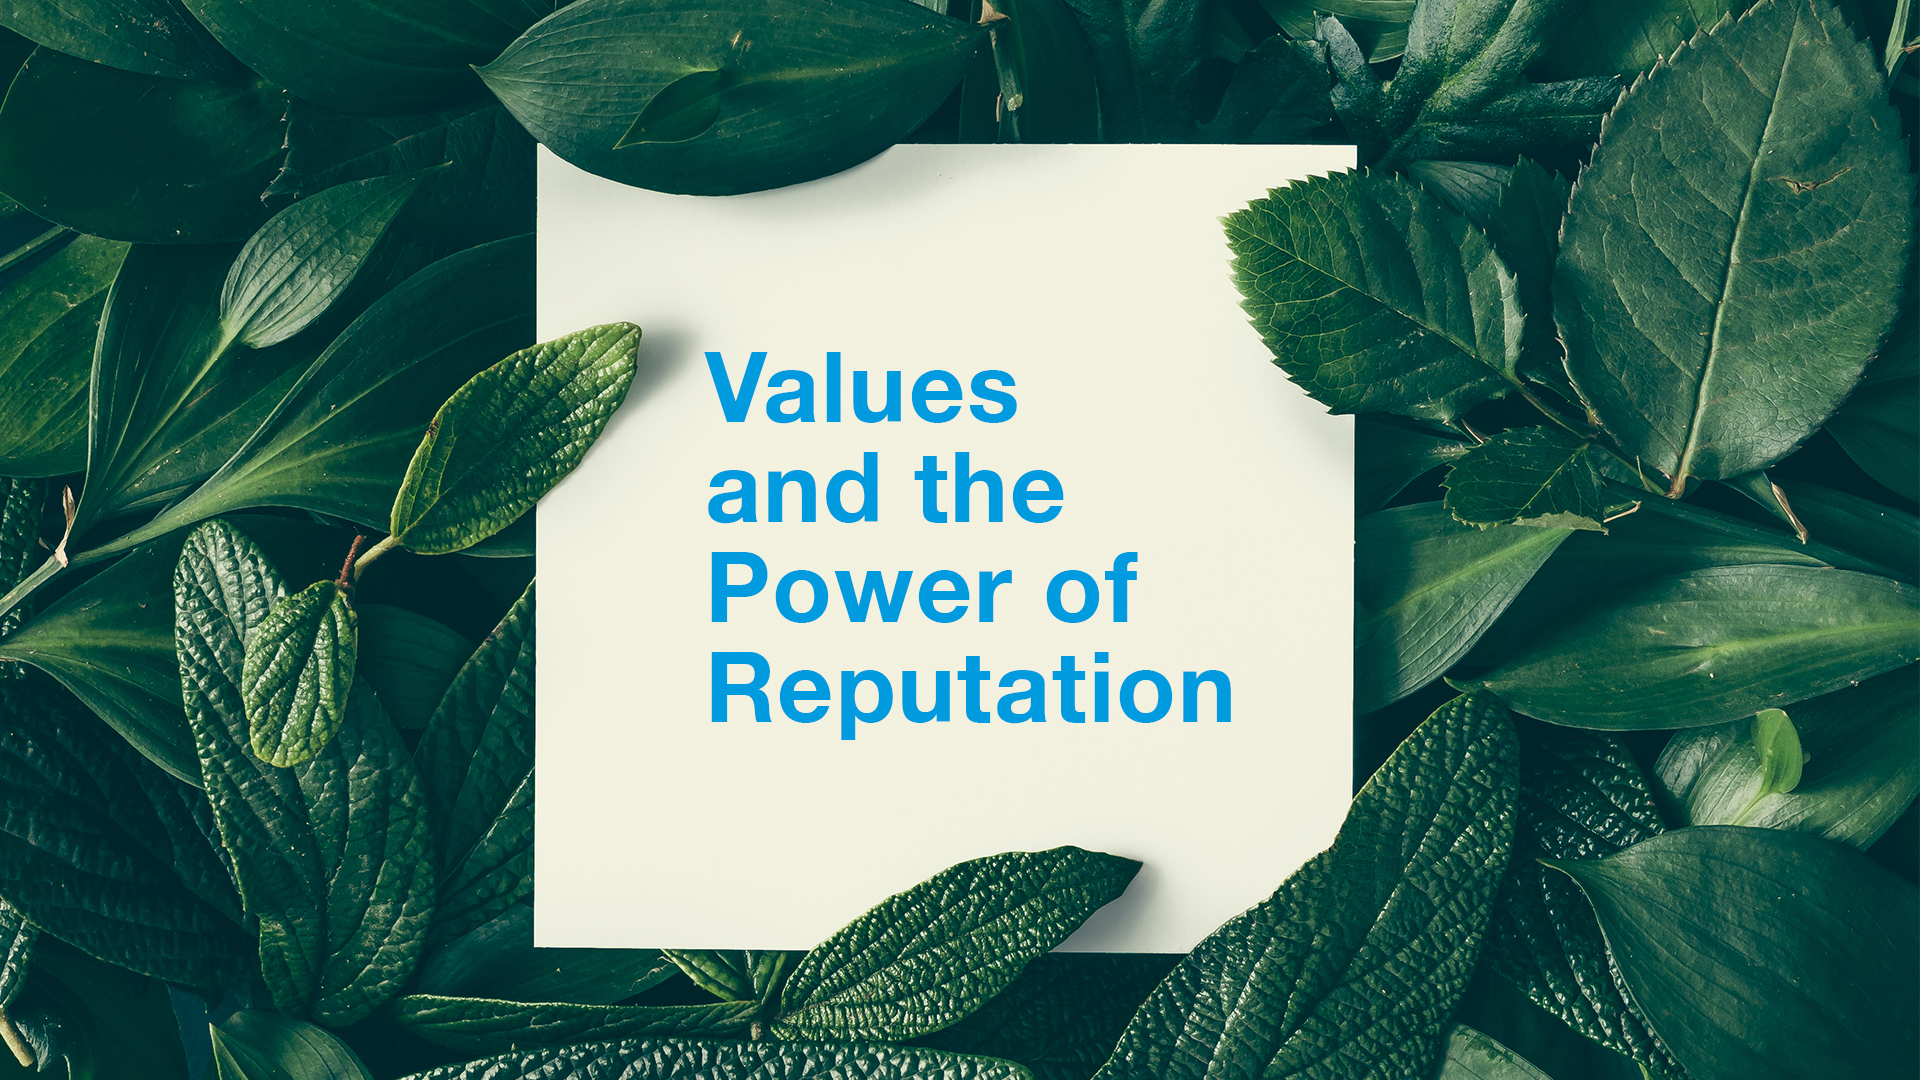 Values and the Power of Reputation thumbnail